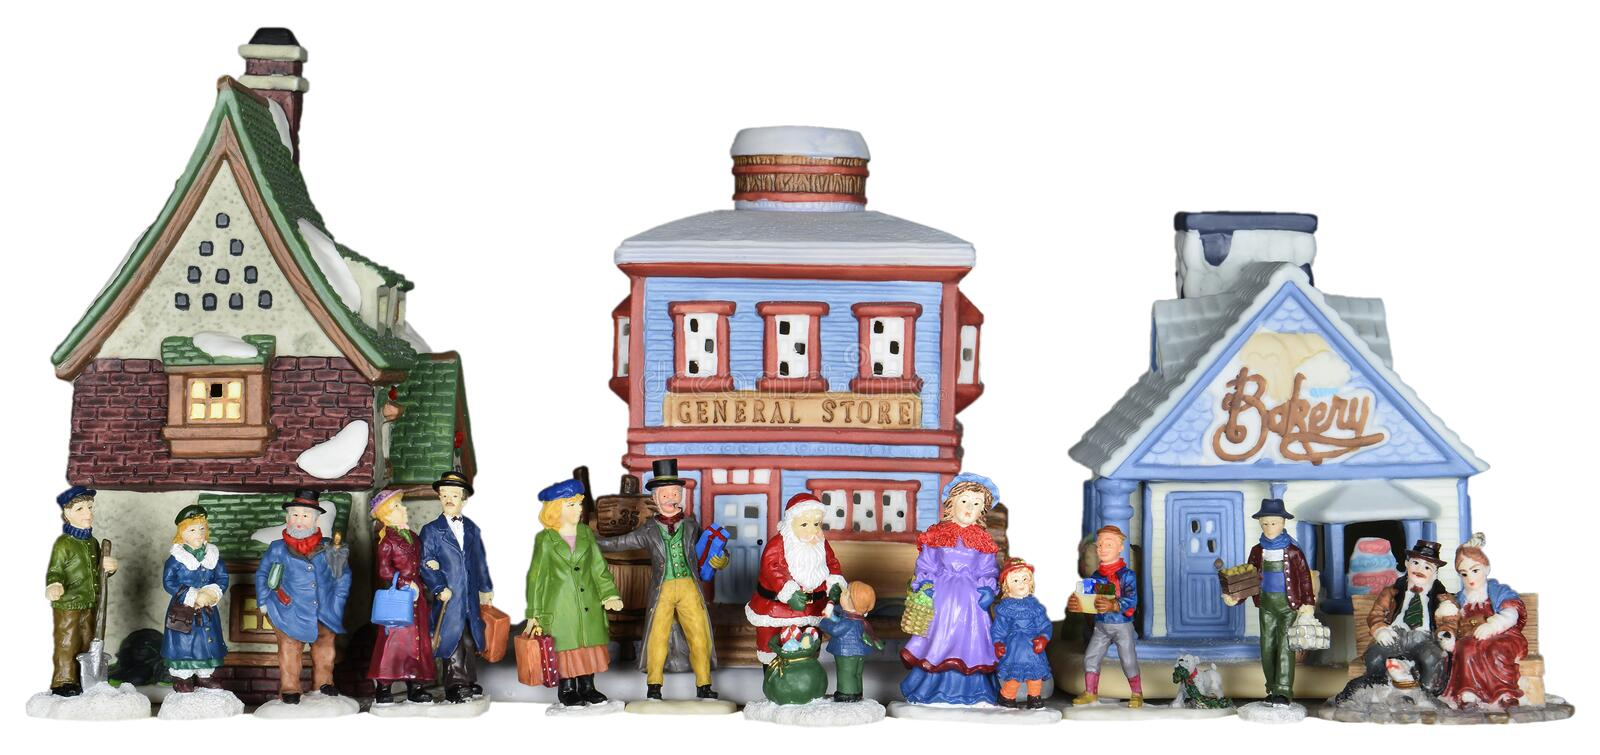 Winter Christmas Village People Scene Isolated stock photo